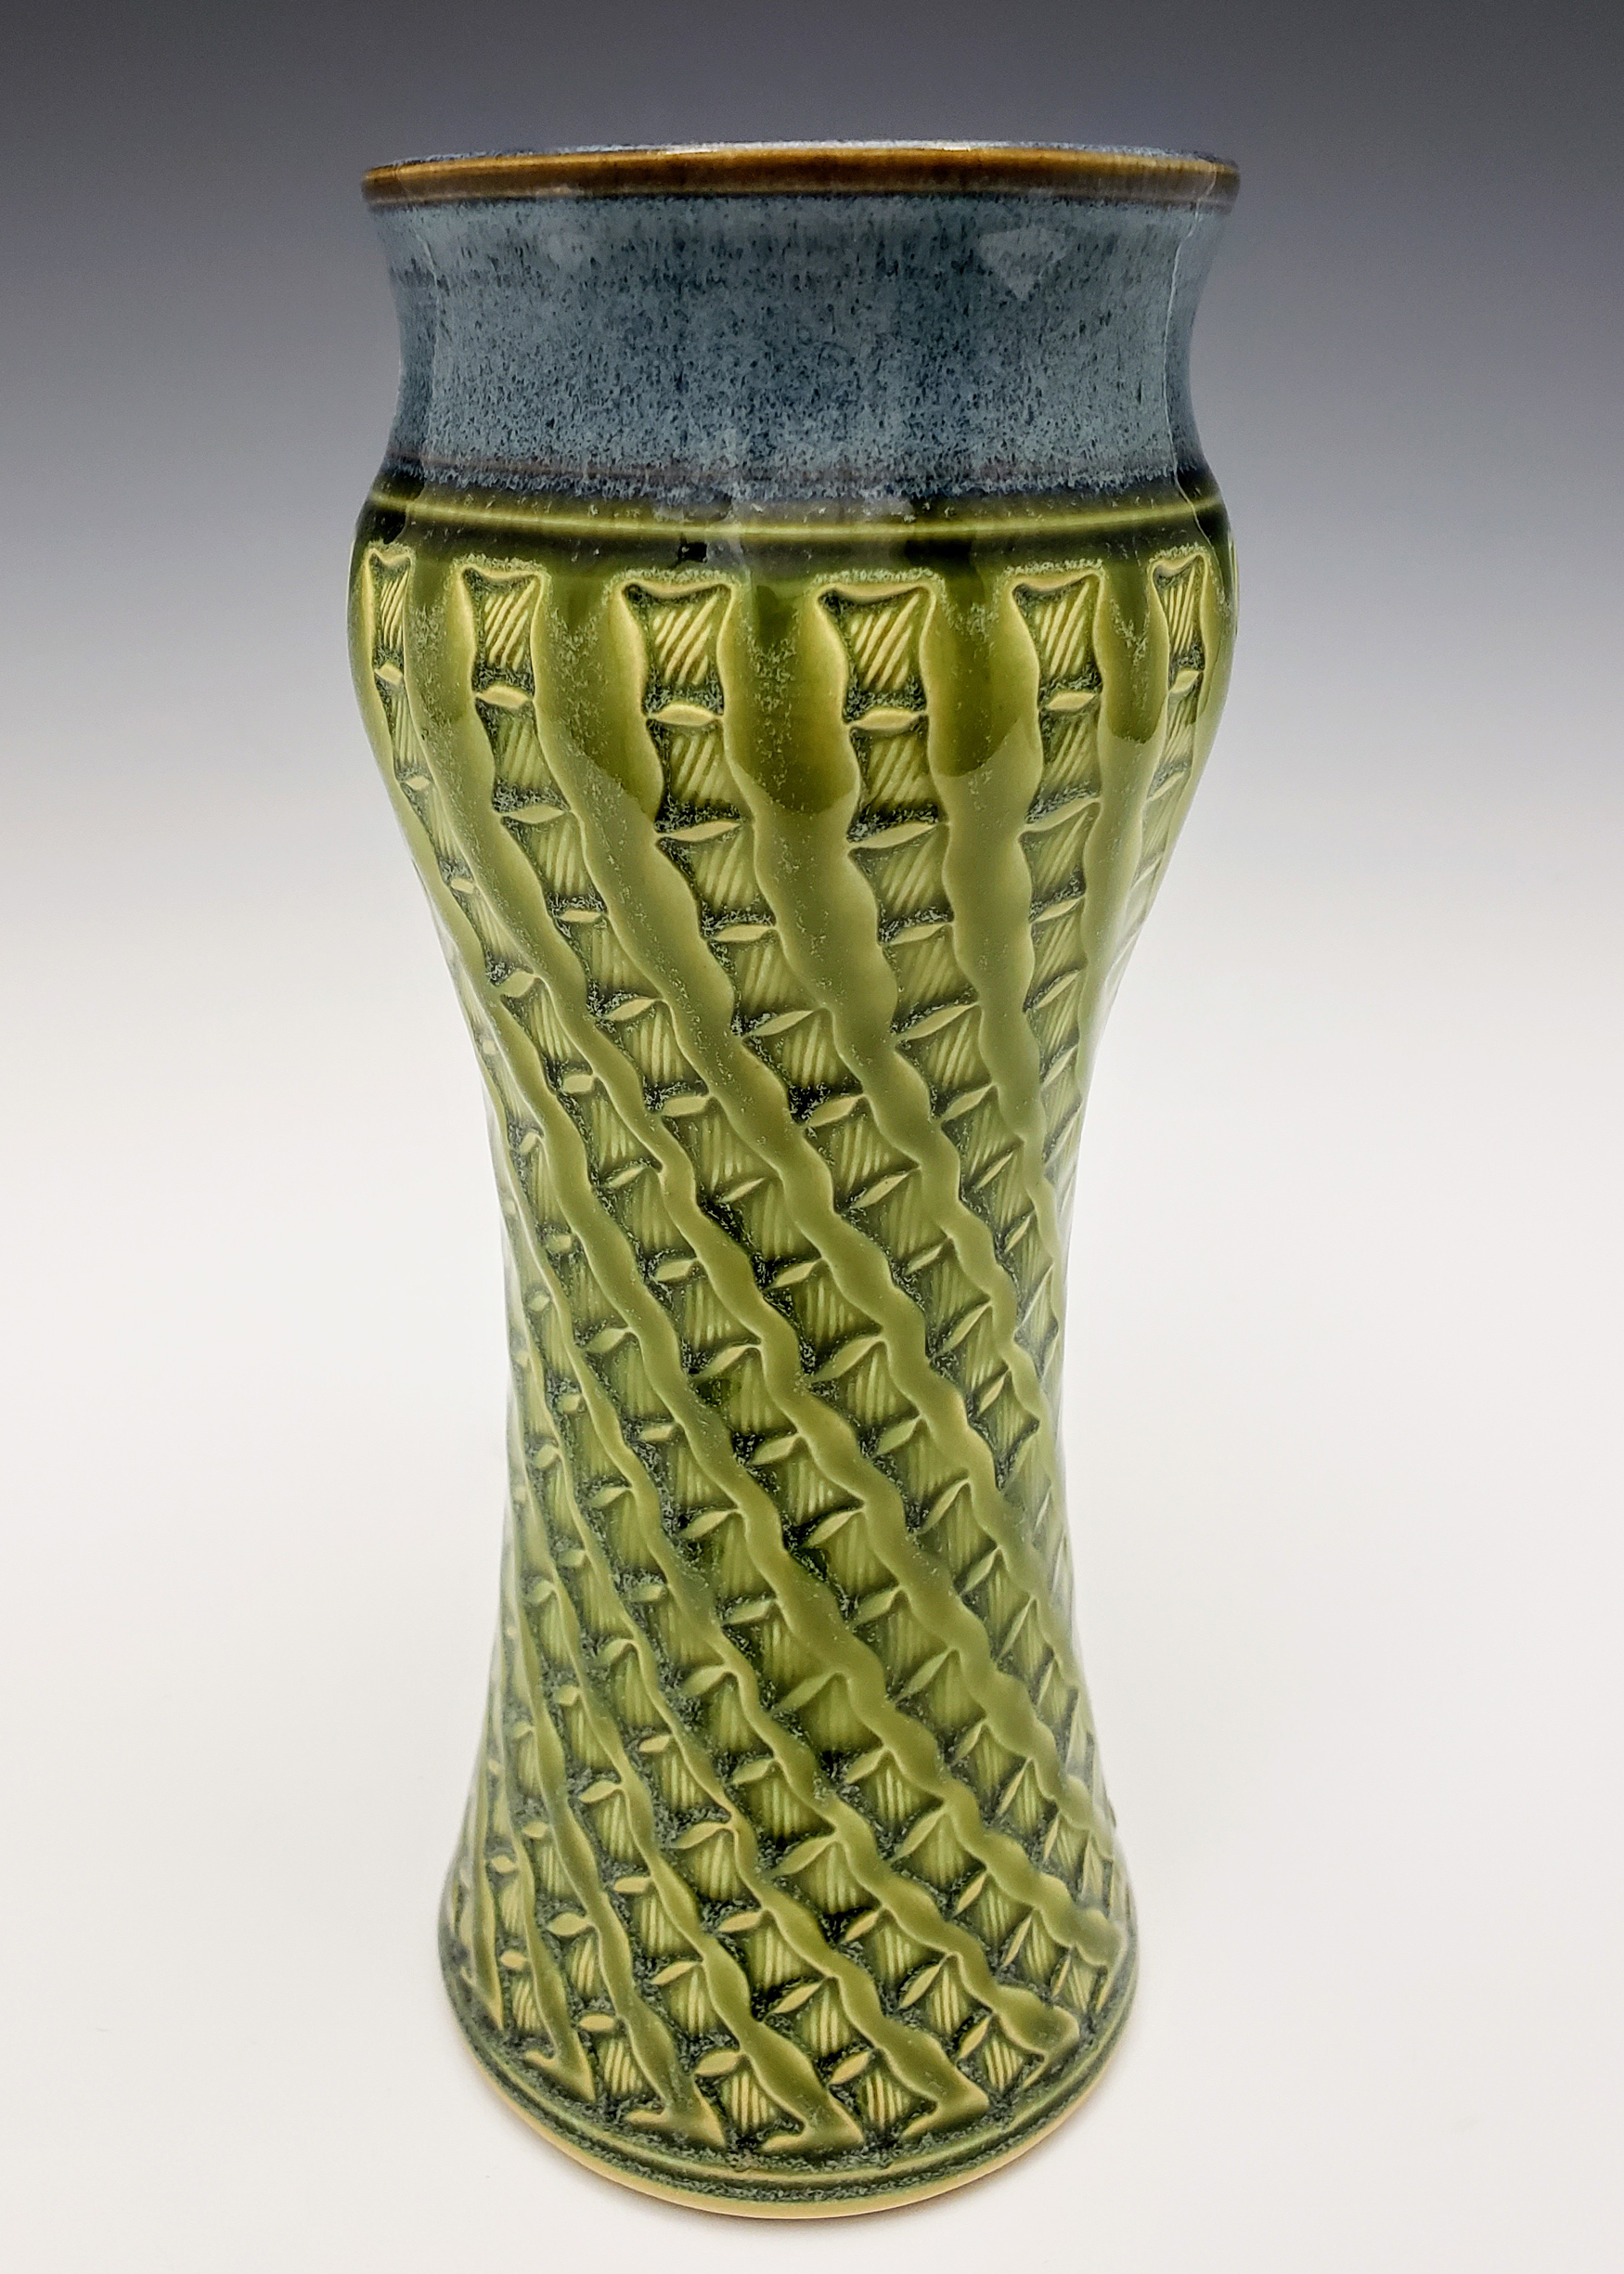 Lg Amphora Vase with bamboo design.jpg